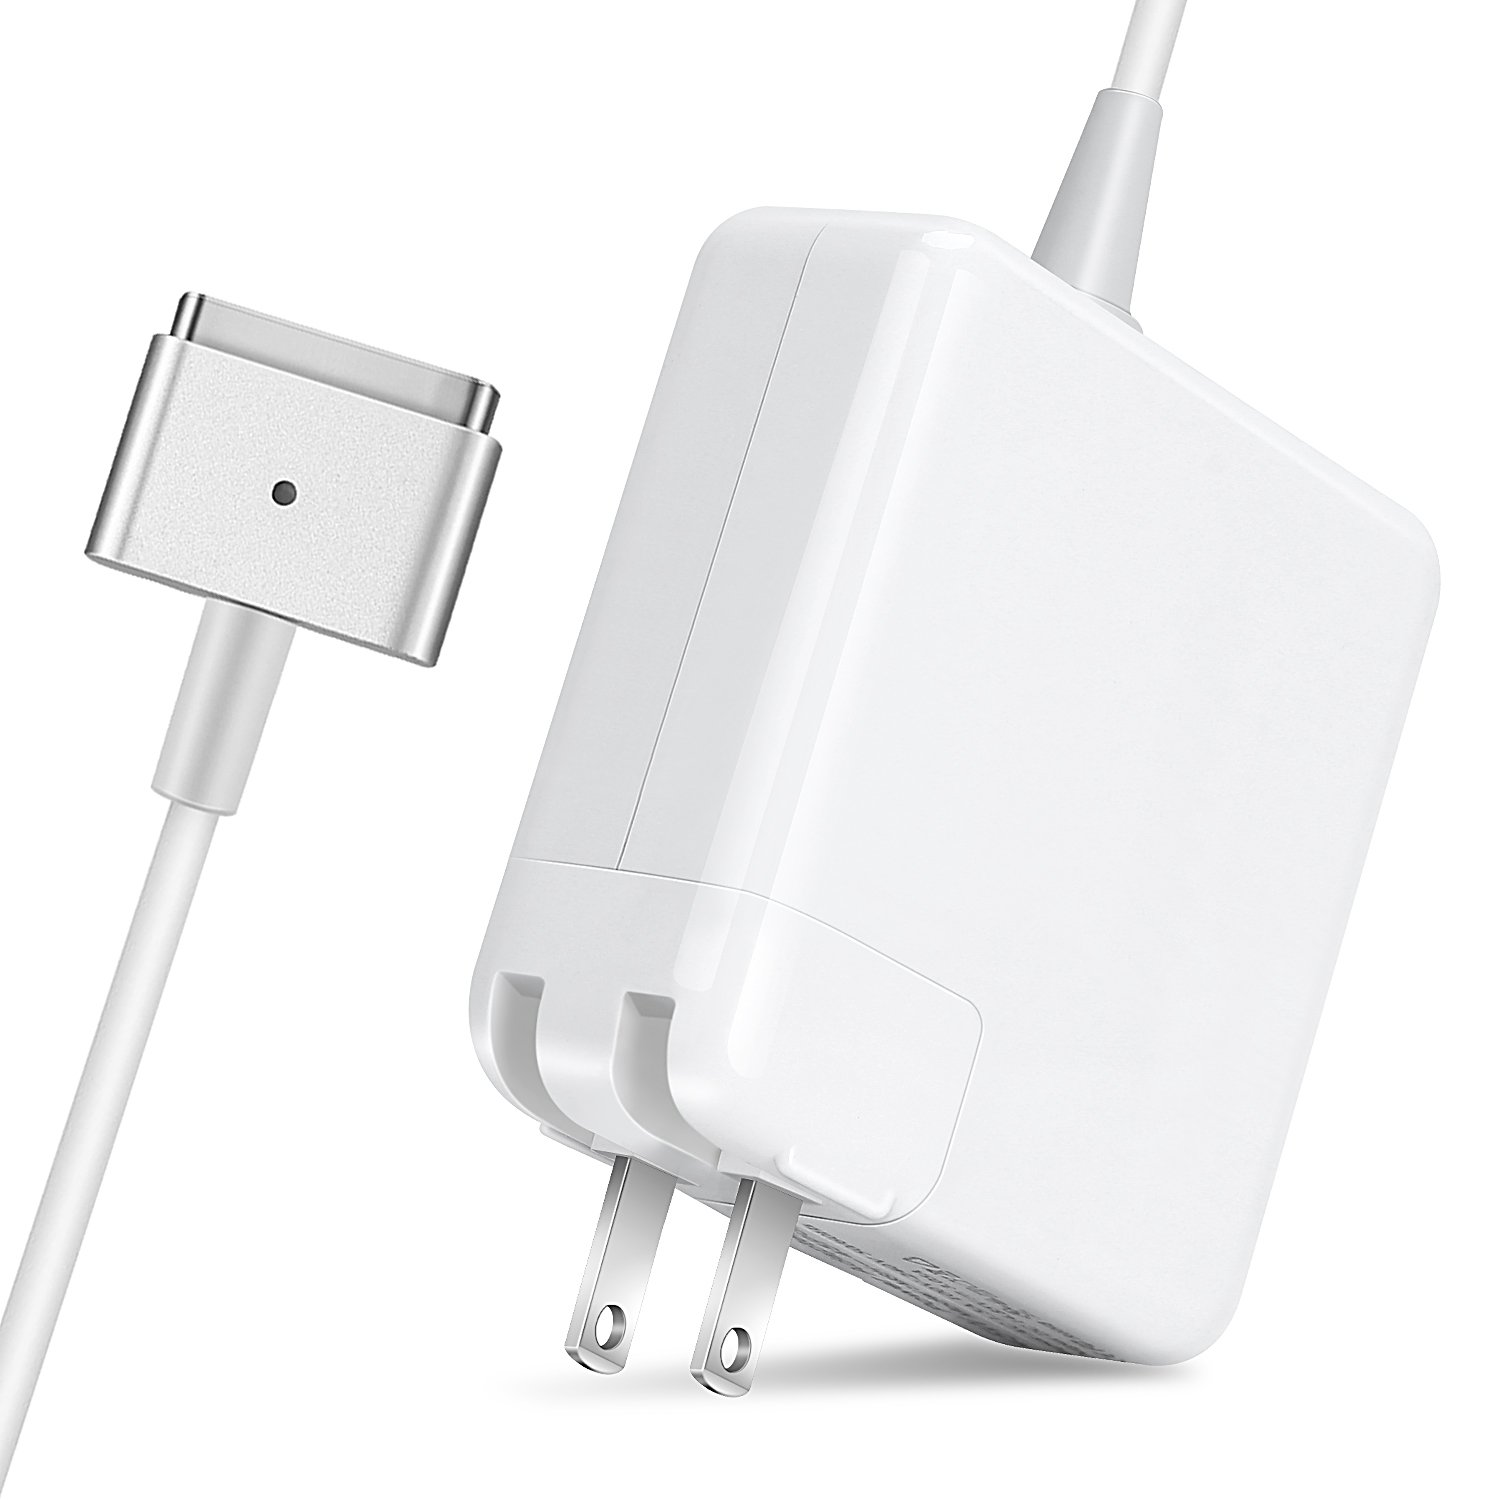 Macbook Air Charger, Ac 45w Magsafe 2 (T-Tip) Connector Power Adapter Charger for MacBook Air 11-inch and 13 inch (For Macbook Air Released after Mid 2012)